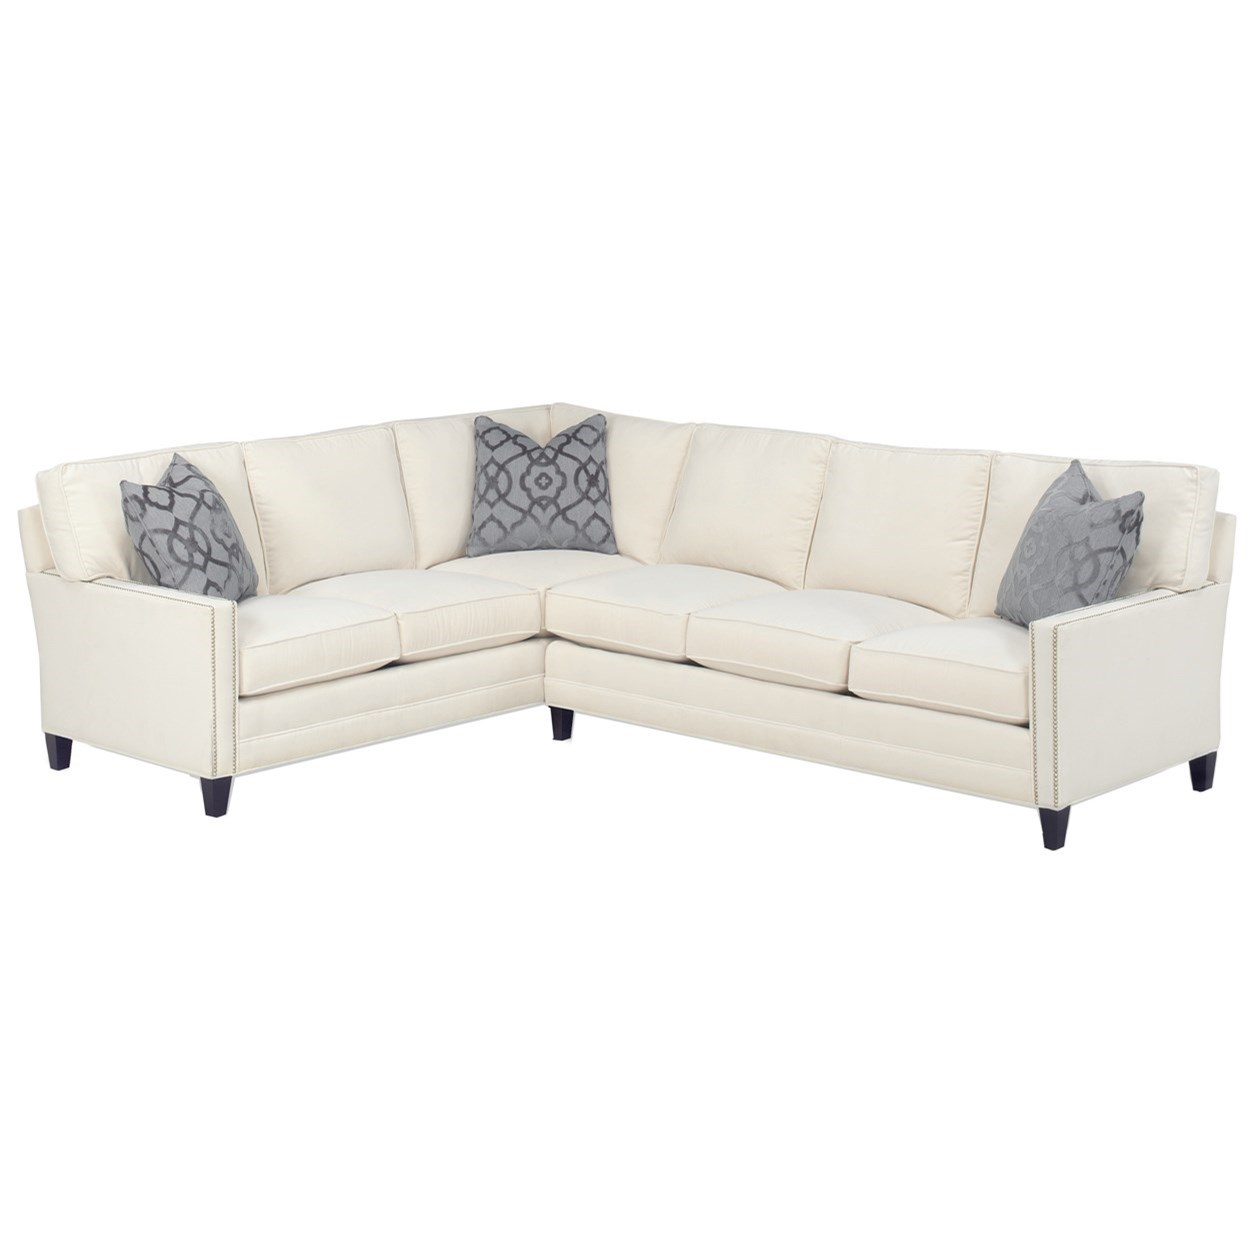 Personal Design Series Customizable Bristol 2 Pc Sectional by Lexington at Baer's Furniture